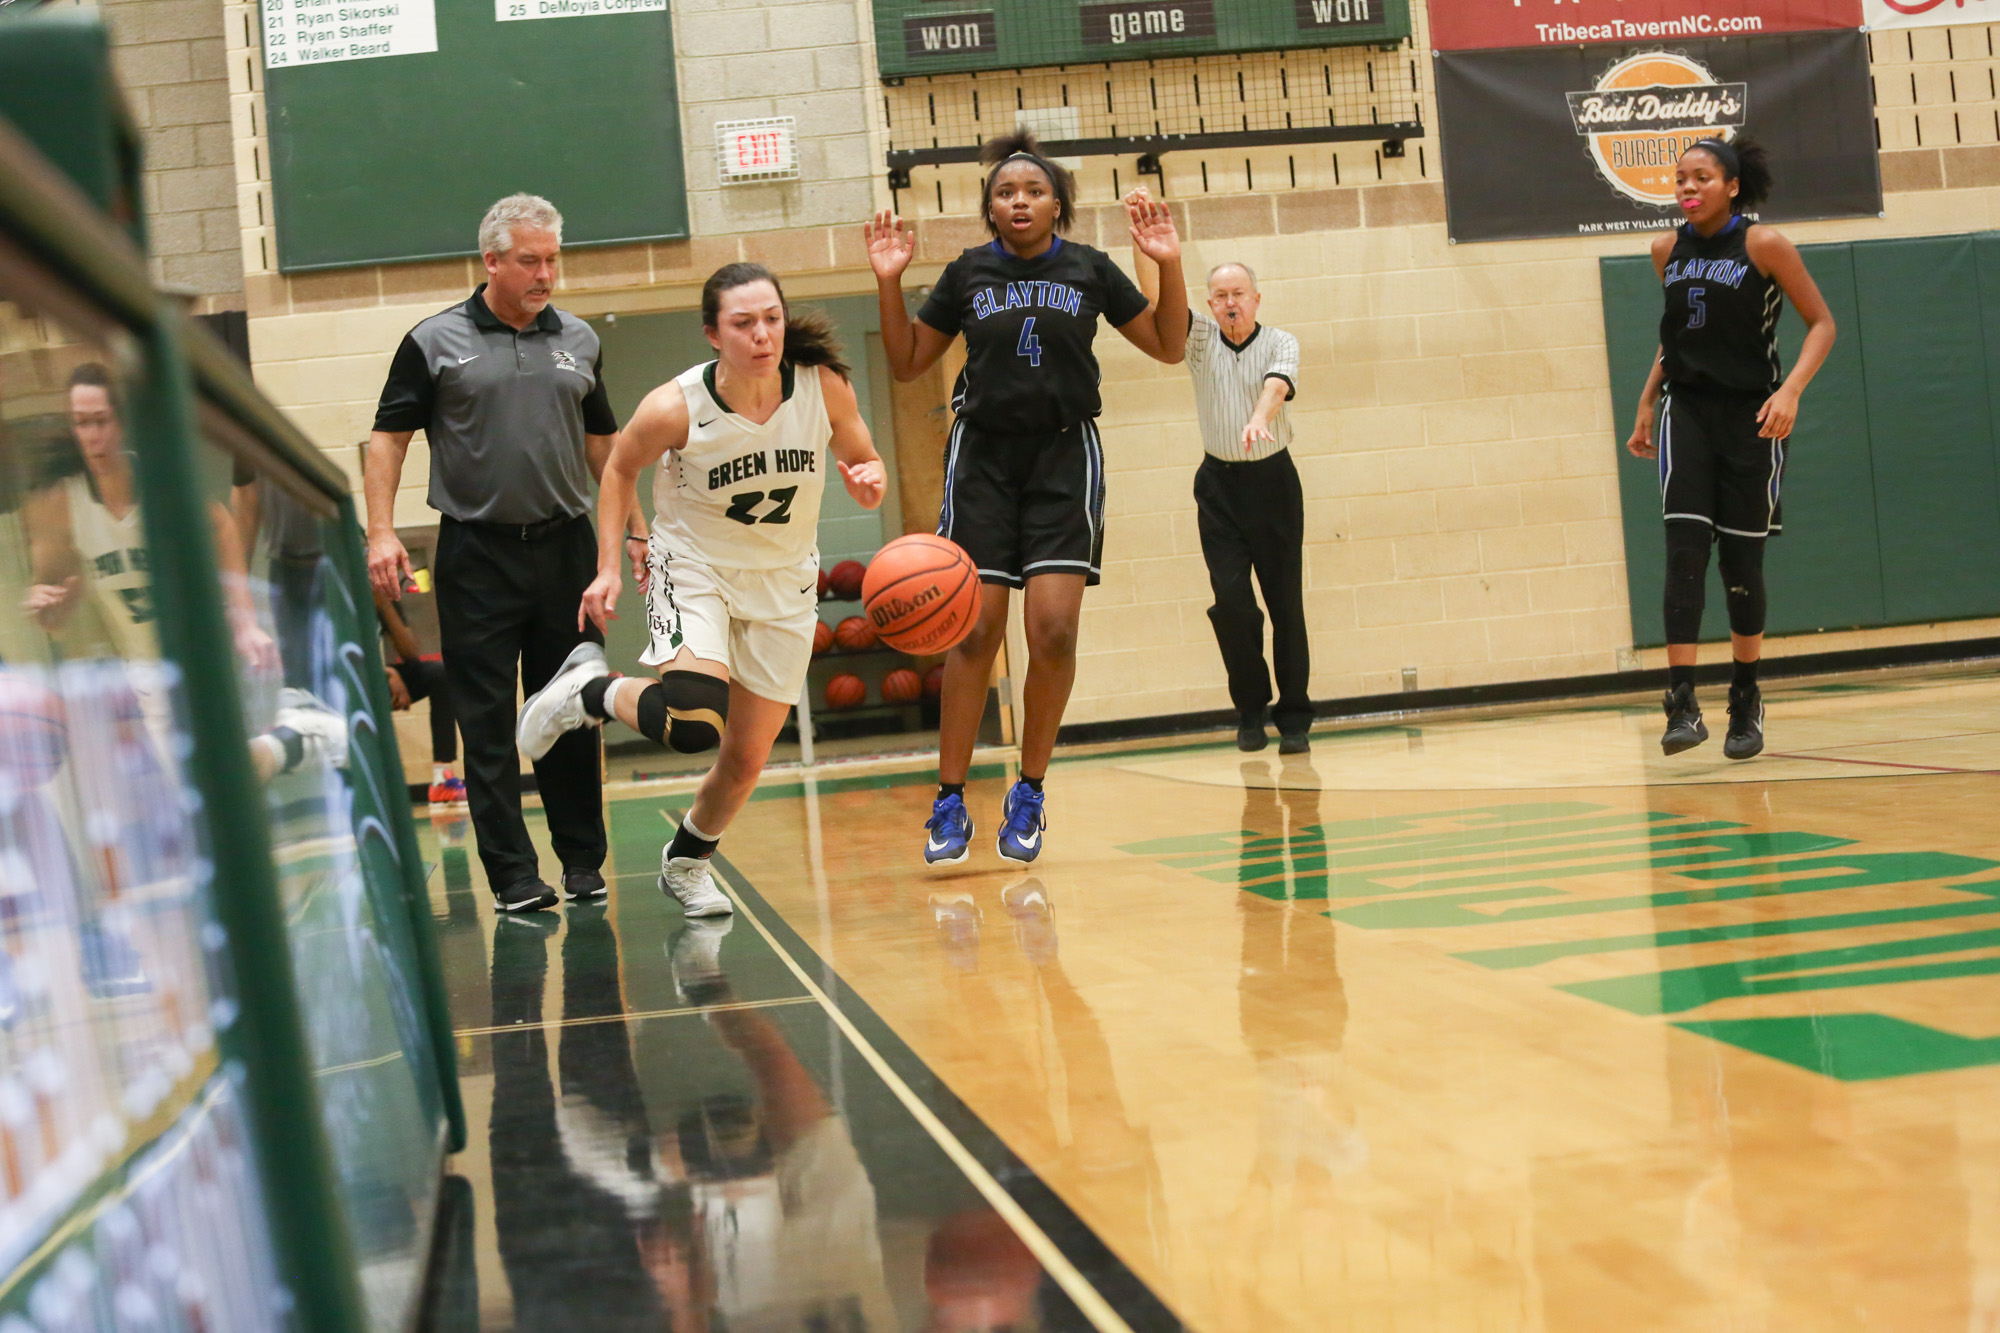 Clayton's No.4 player freezes at a moment worrying about the foul pushing Green Hope's Kelly Fetzgerald and the ball out of bounds during the second half of game on Feb.22, 2017. Green Hope won, 58-35.